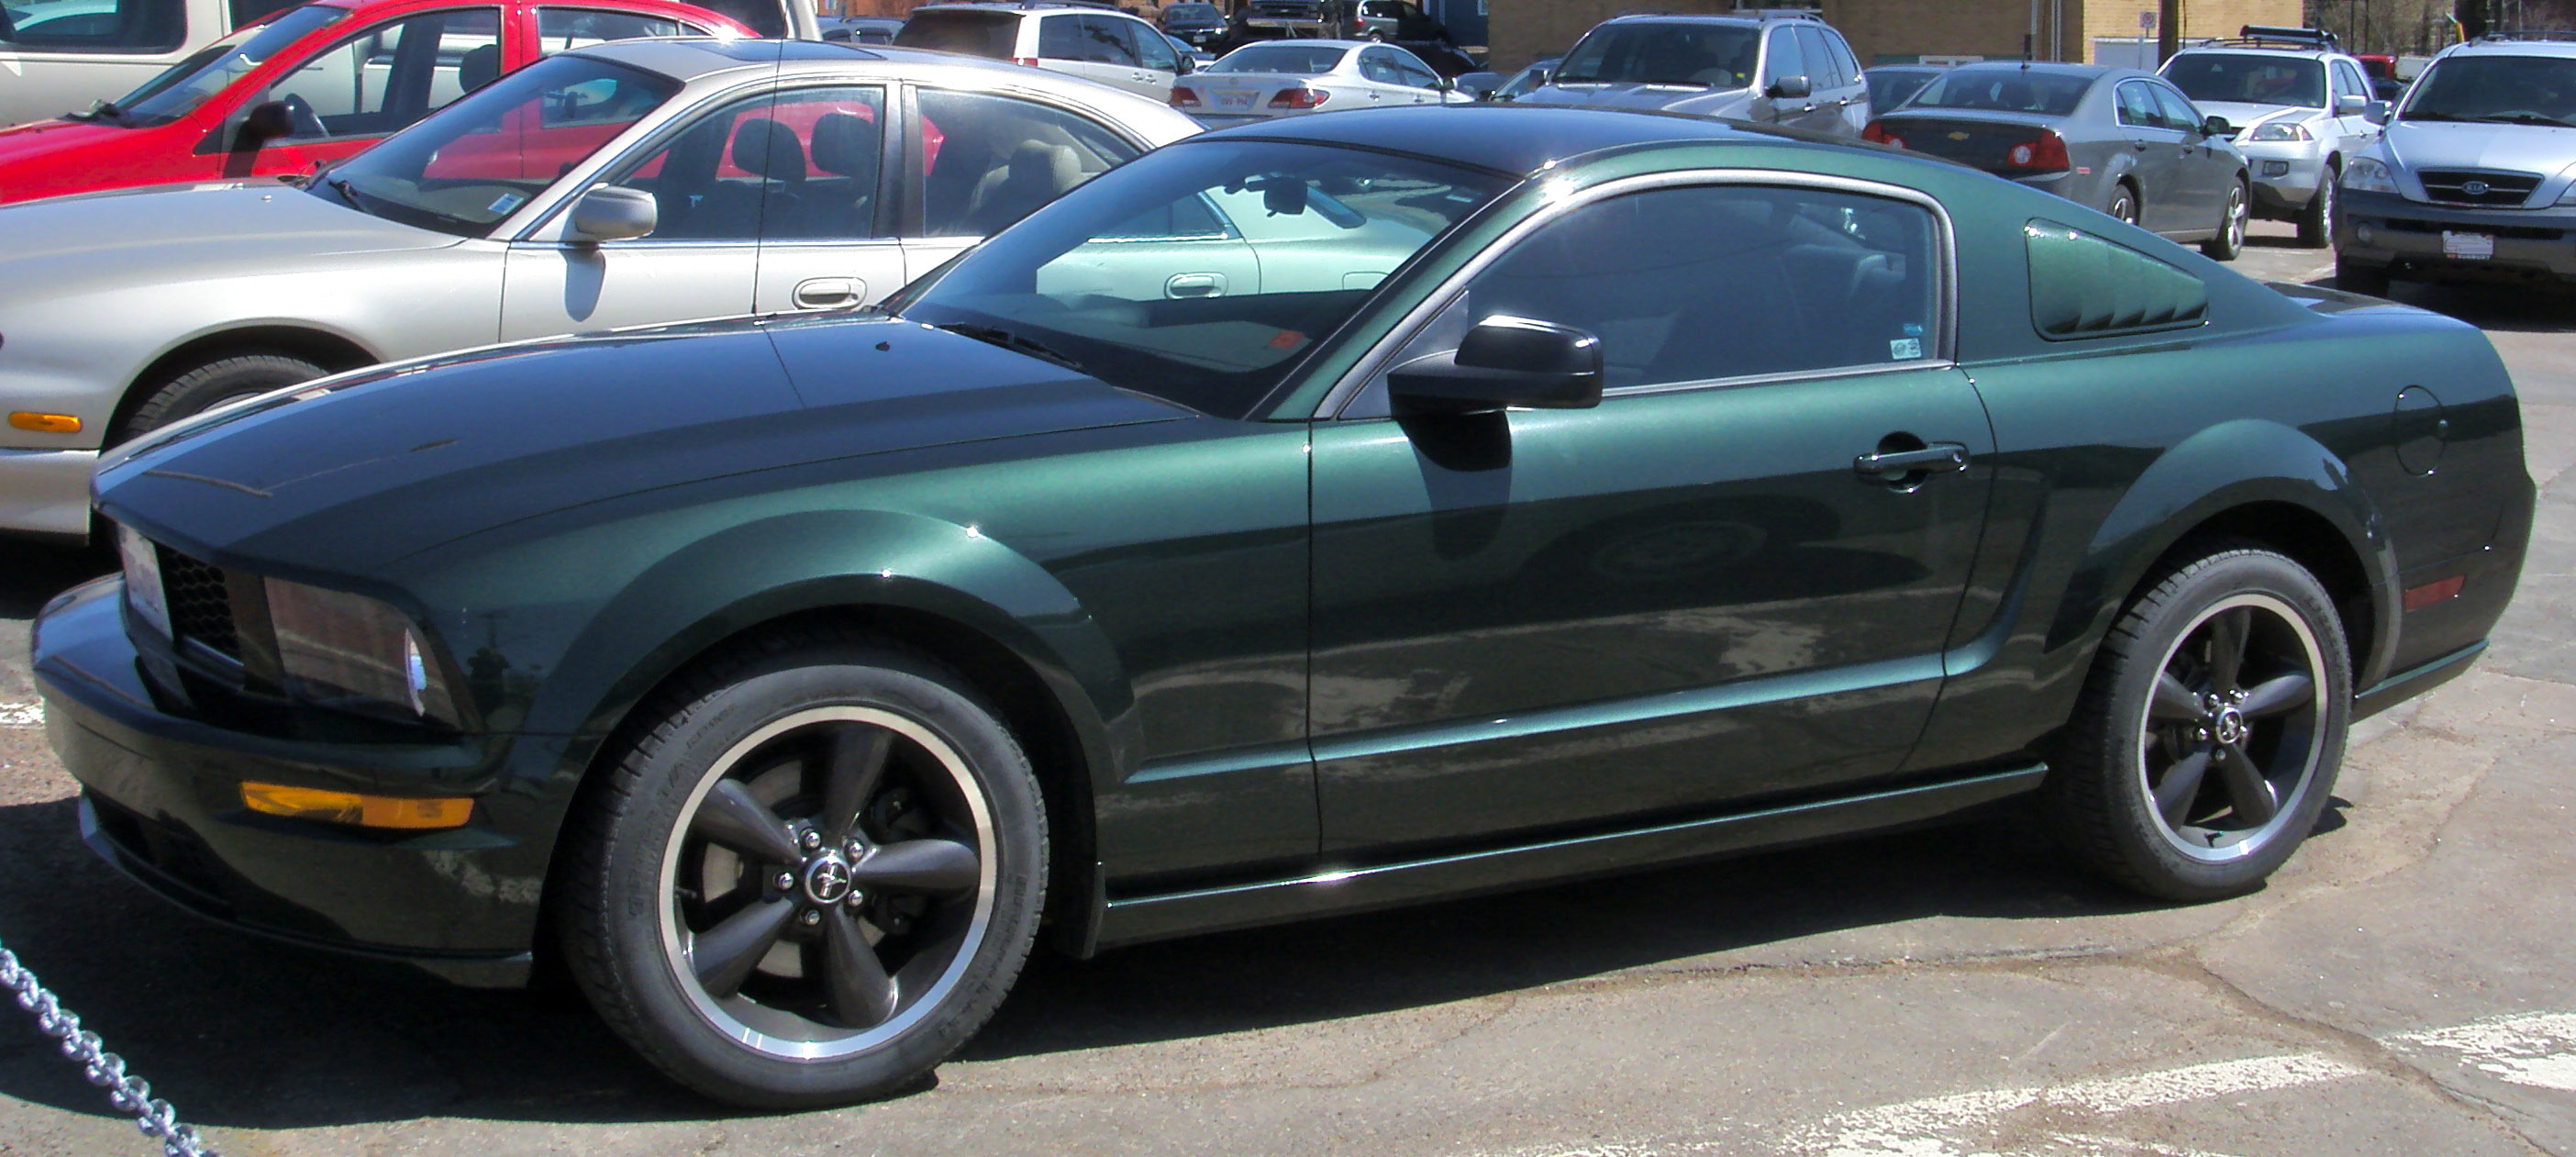 File 2008 Ford Mustang Bullitt Jpg Wikimedia Commons